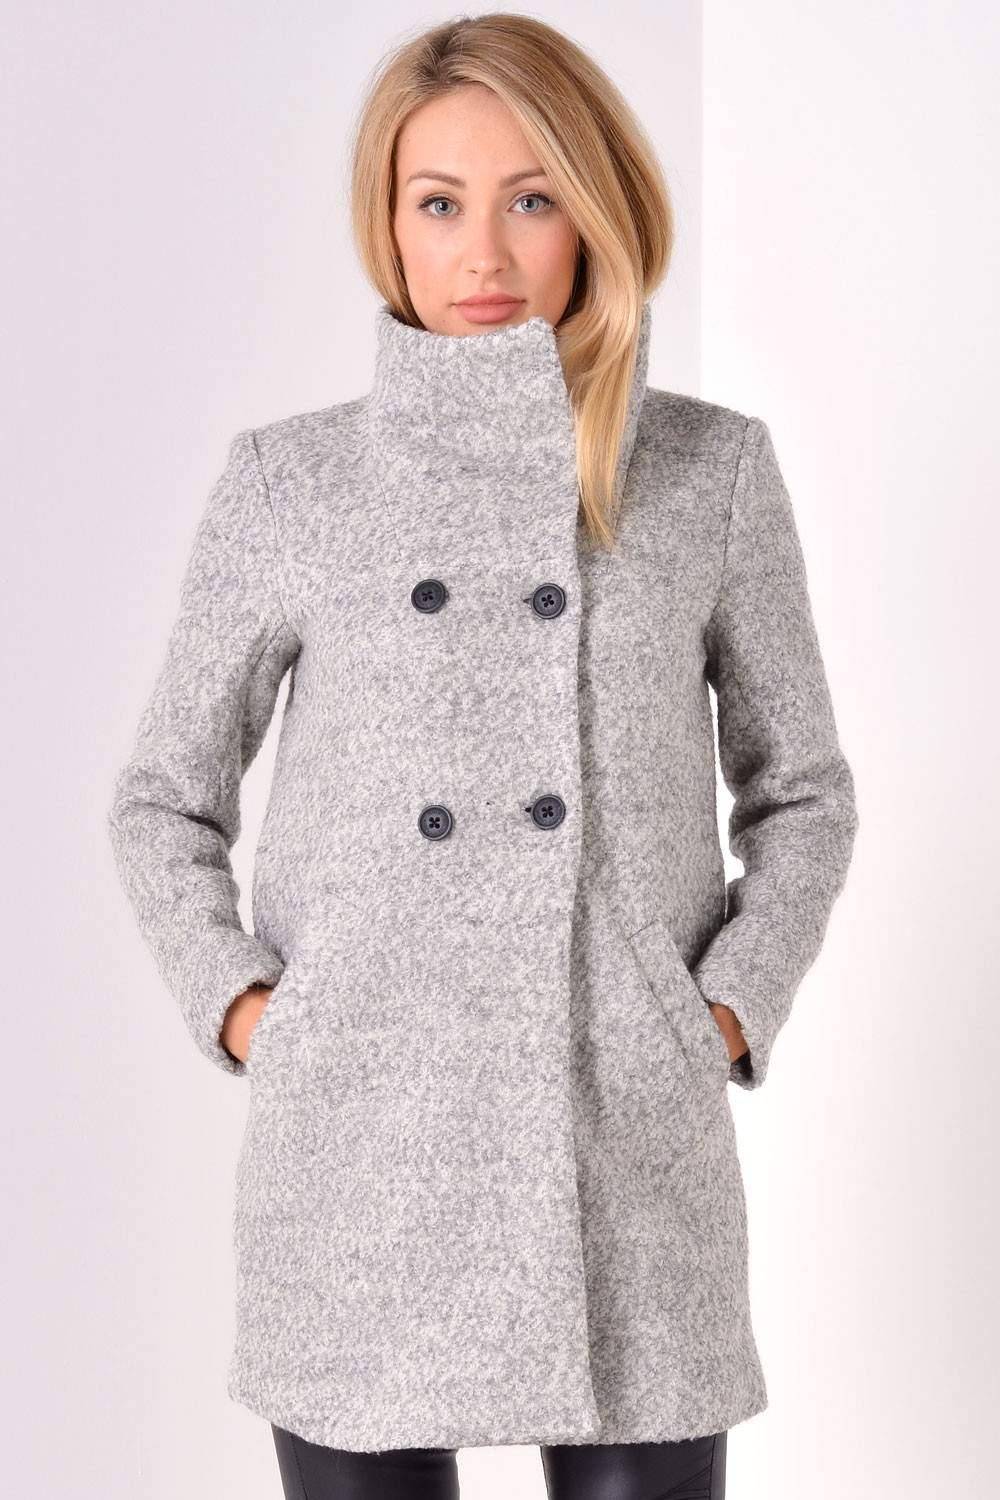 Sophia Wool Coat in Light Grey